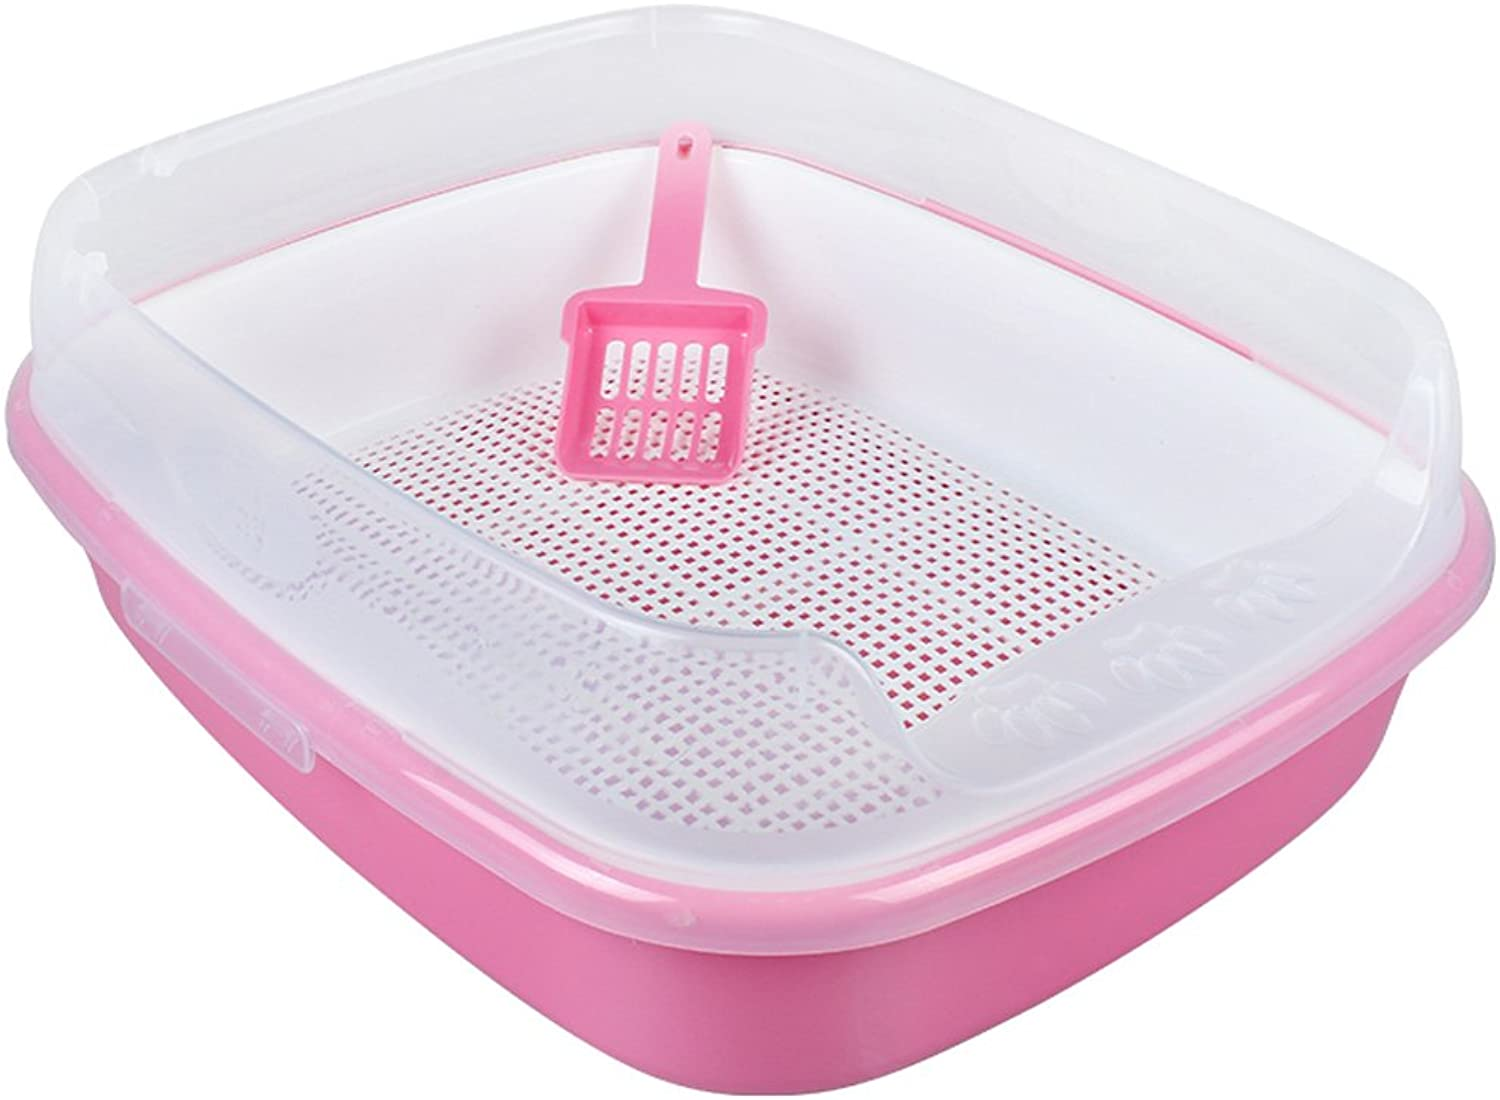 CHONGWFS SemiEnclosed Cat Litter Basin Cat Toilet Spacious Easy to Clean Comes with Cat Litter Scoop Threecolor Optional Cat Supplies (color   Pink, Size   Style B)